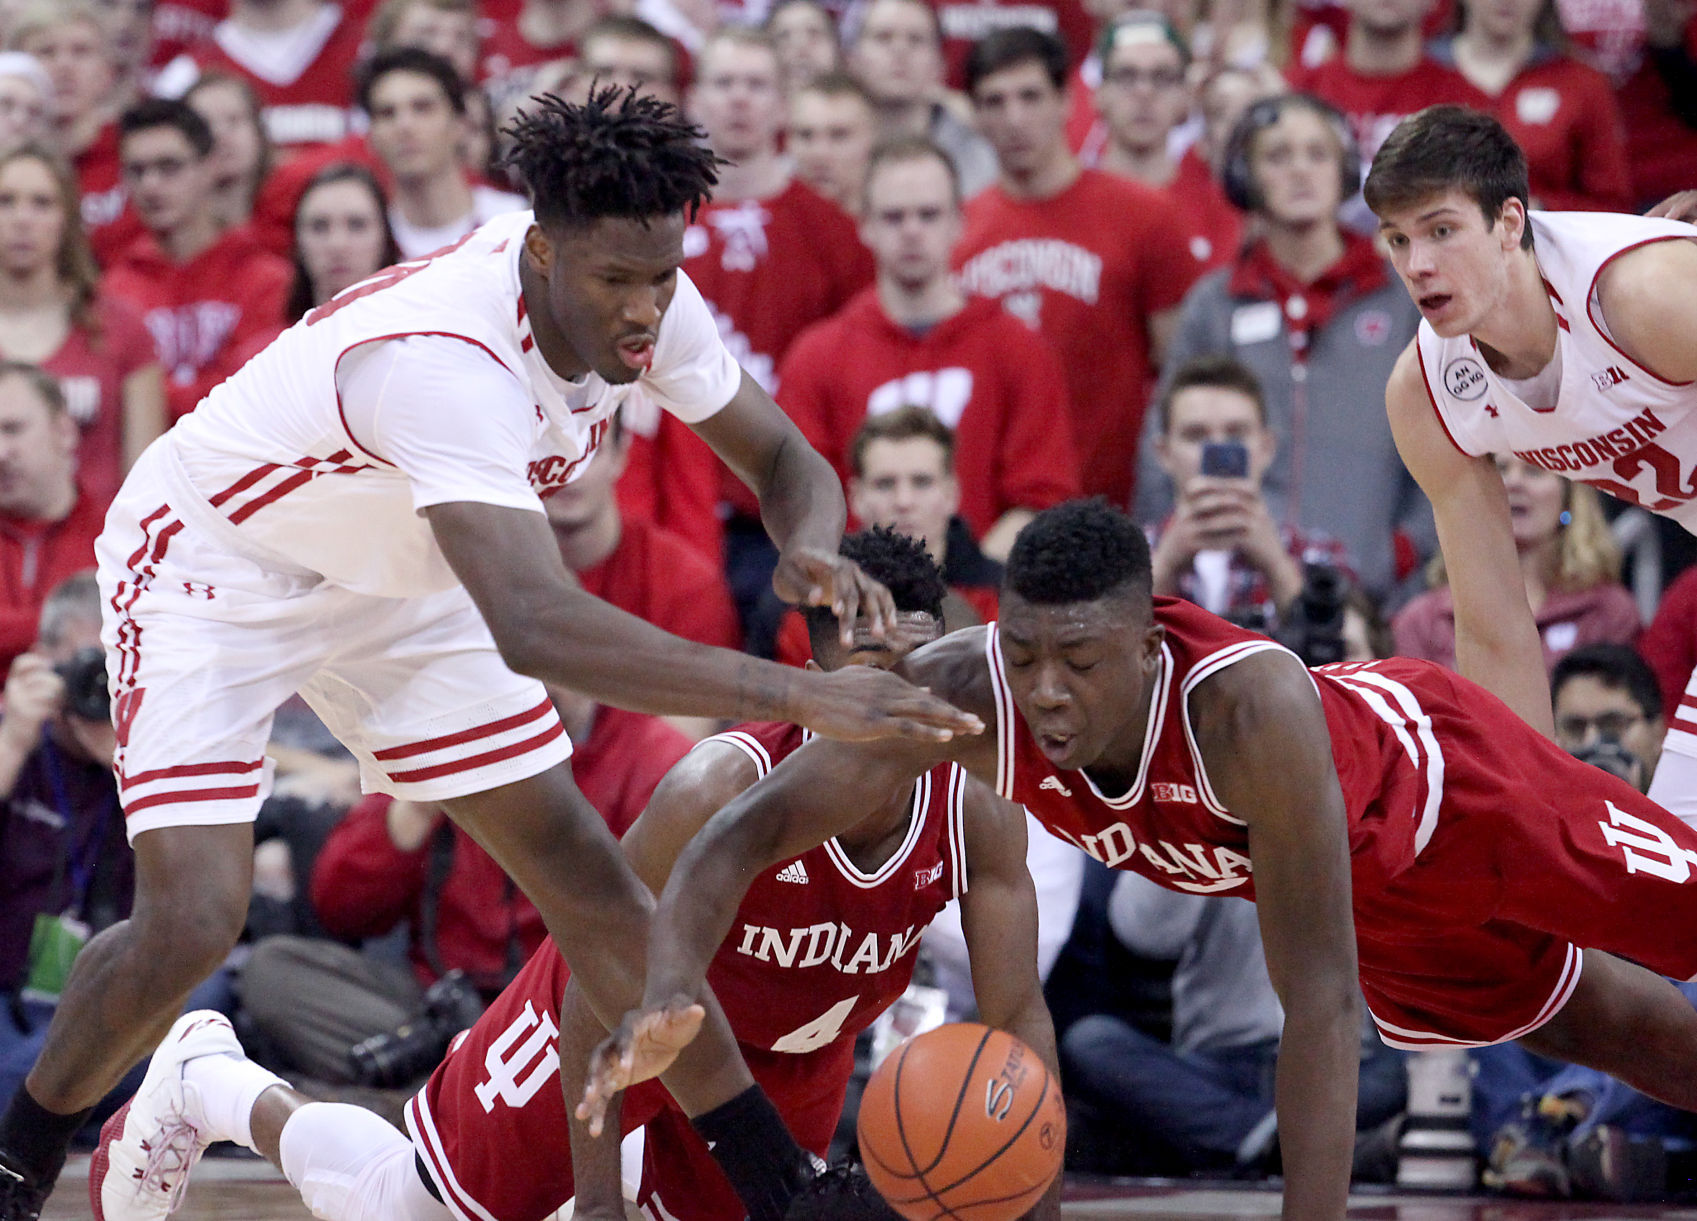 Notebook: Turnovers, slow start doom IU in 65-60 loss at Wisconsin